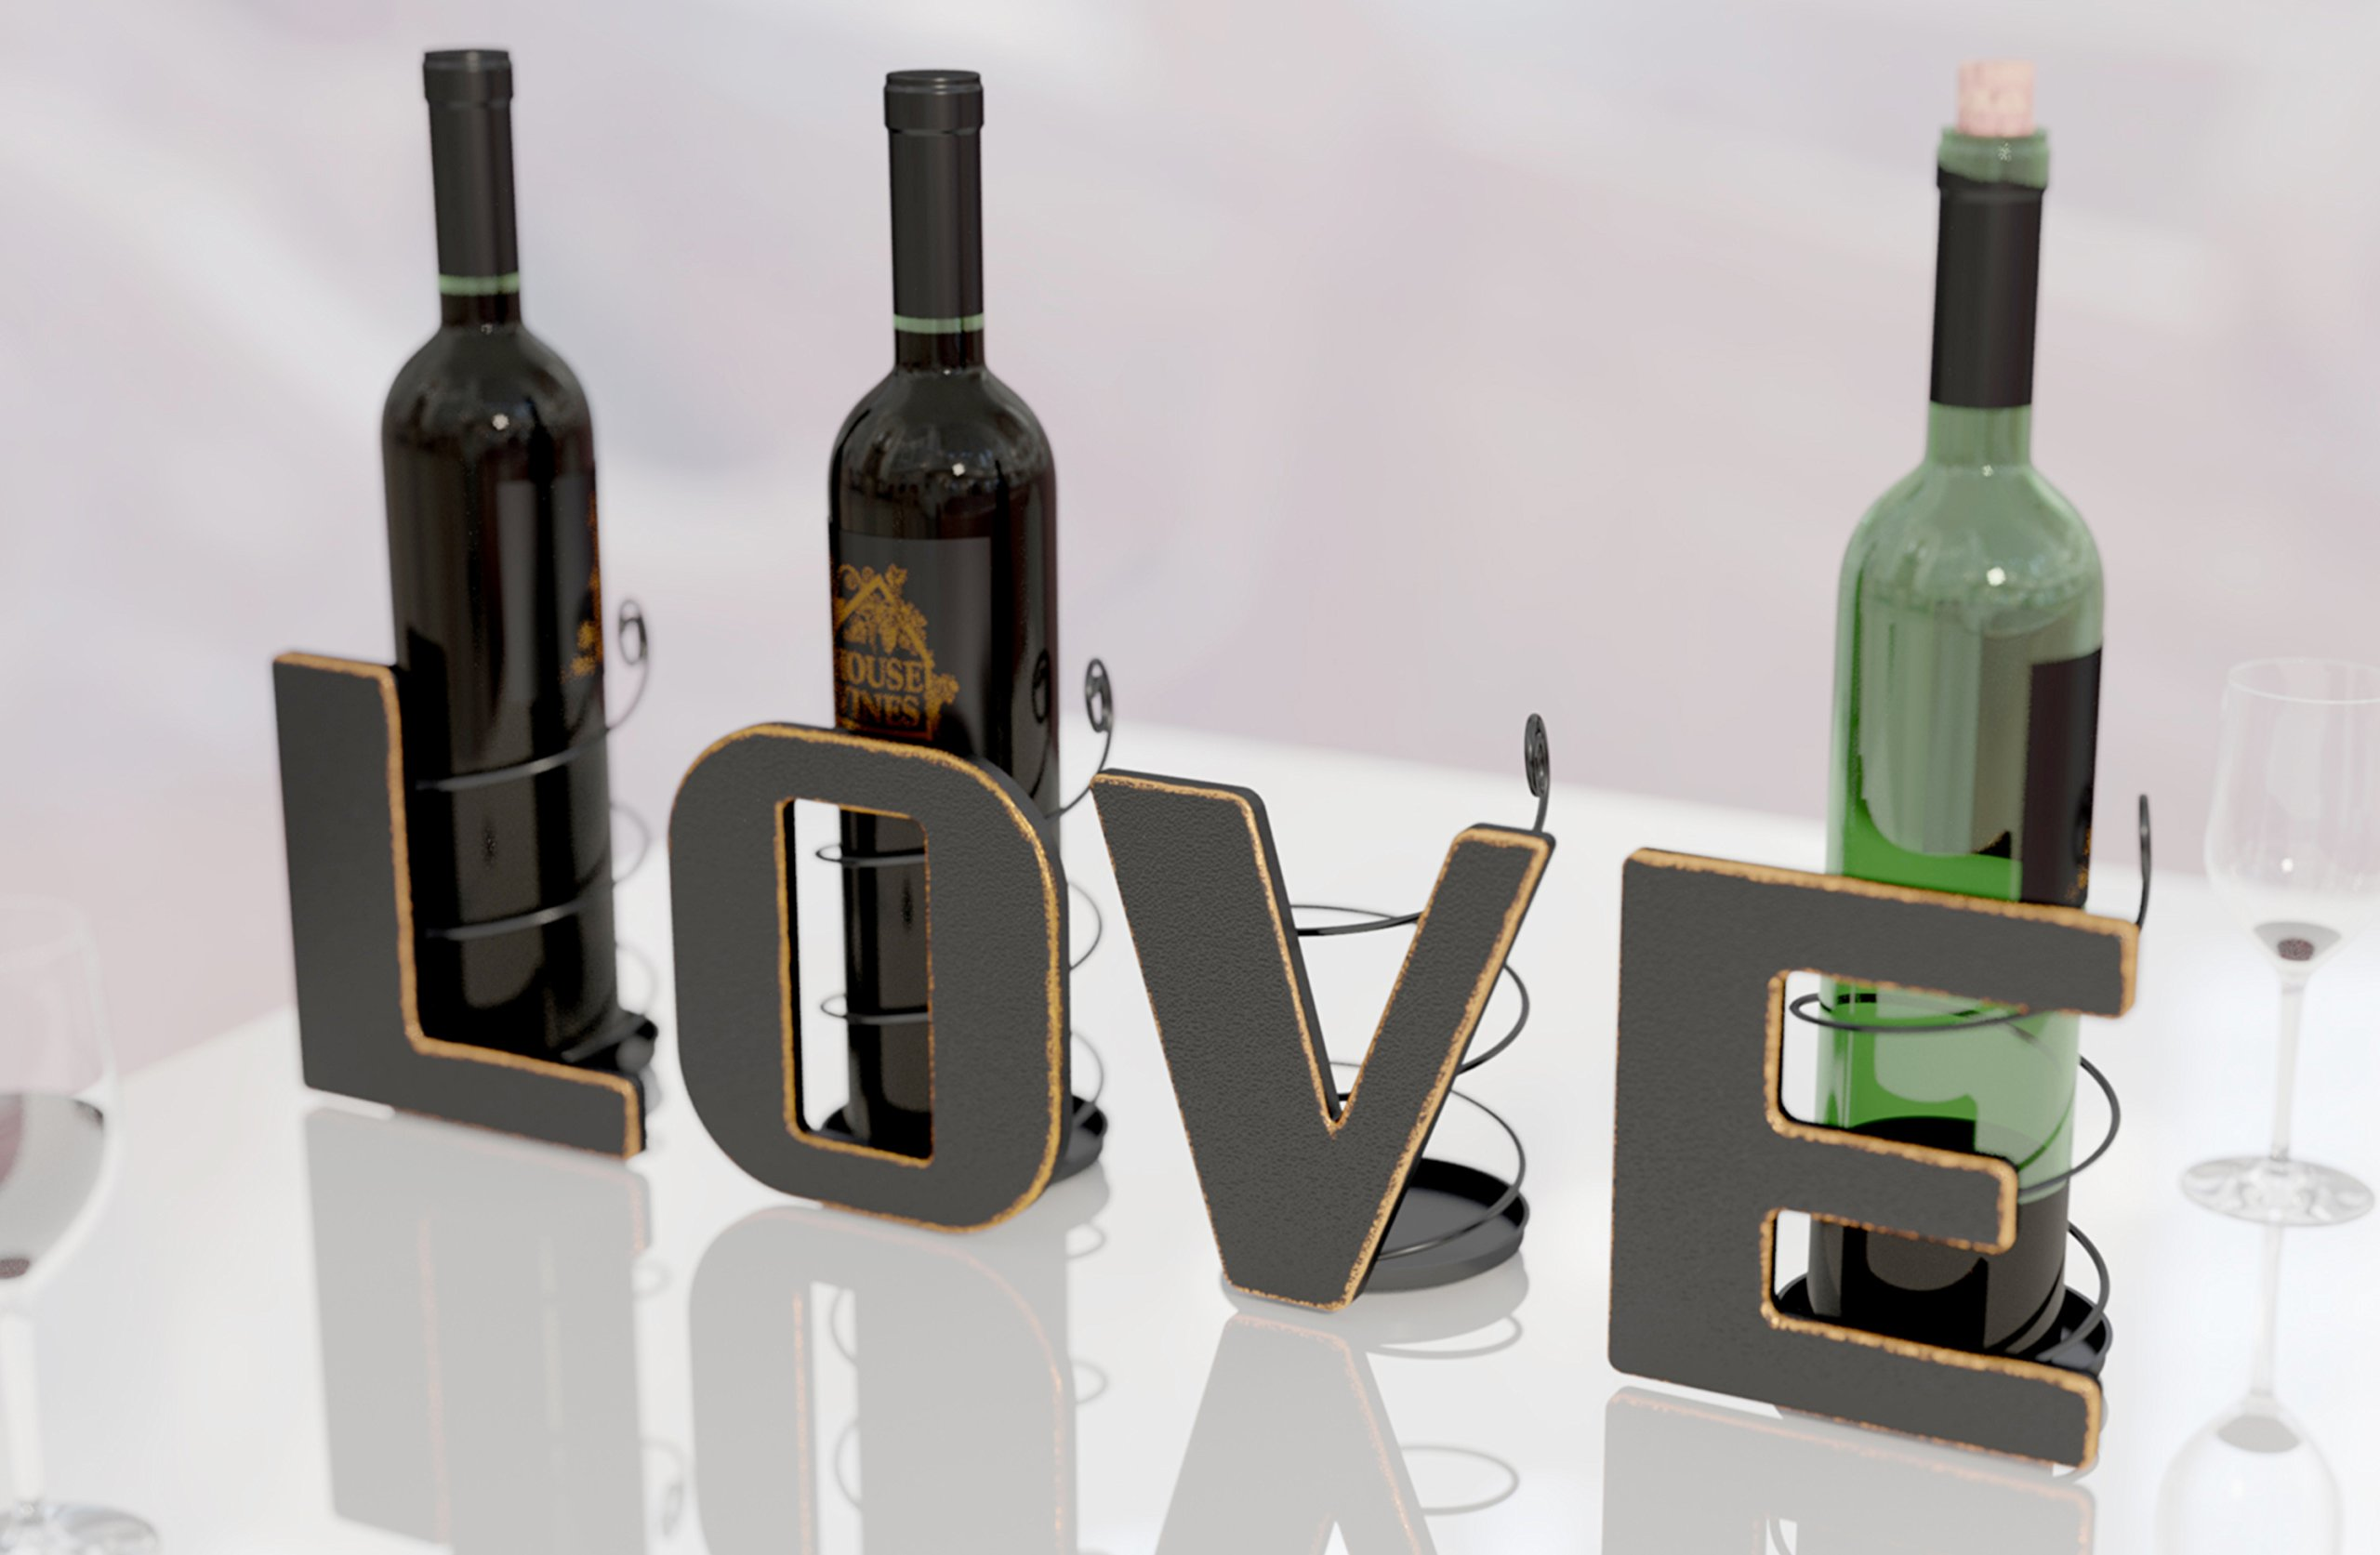 LOVE Letter Wine Bottle Holder Art Décor ~ Metal ~ All 4 Letters LOVE ~ Gifts for Wine Lovers ~ Includes Sample Silicone Wine Glass Charm - by HouseVines